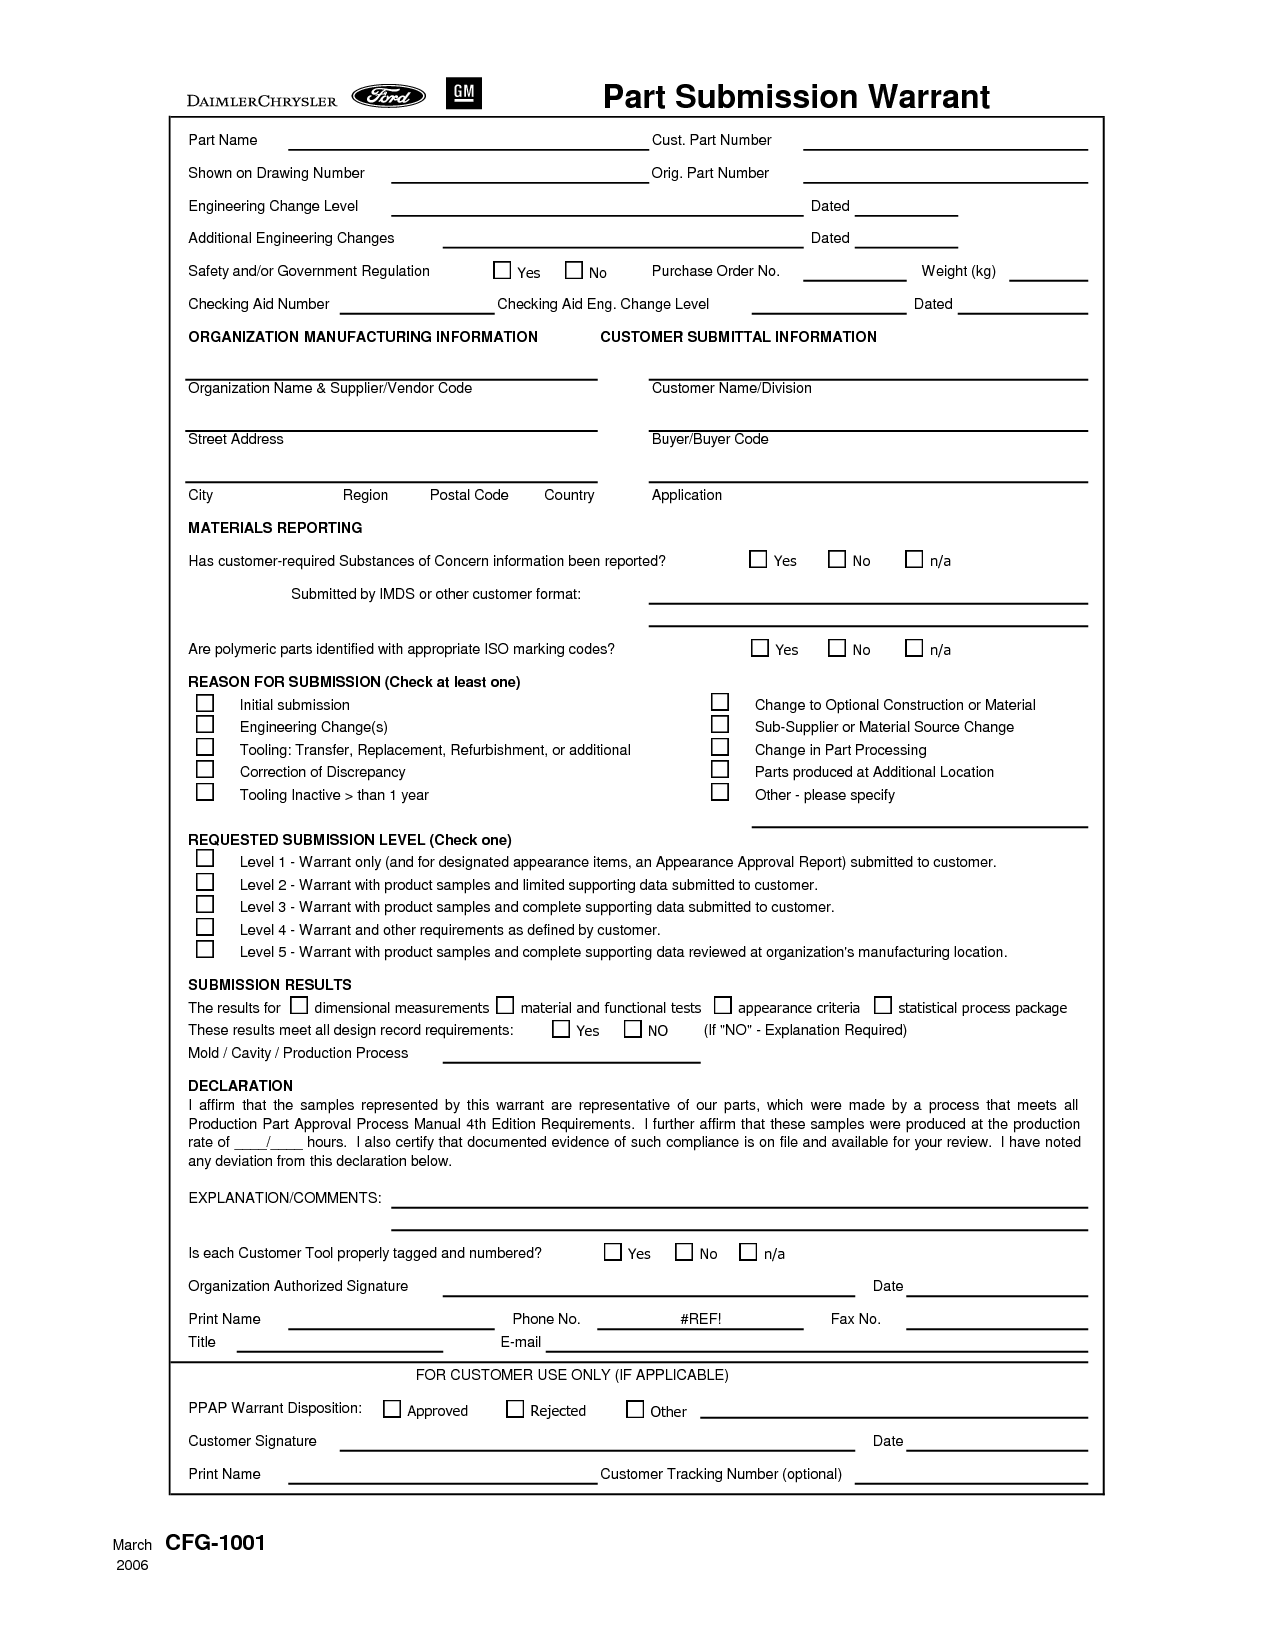 PSW Part Submision Warrant